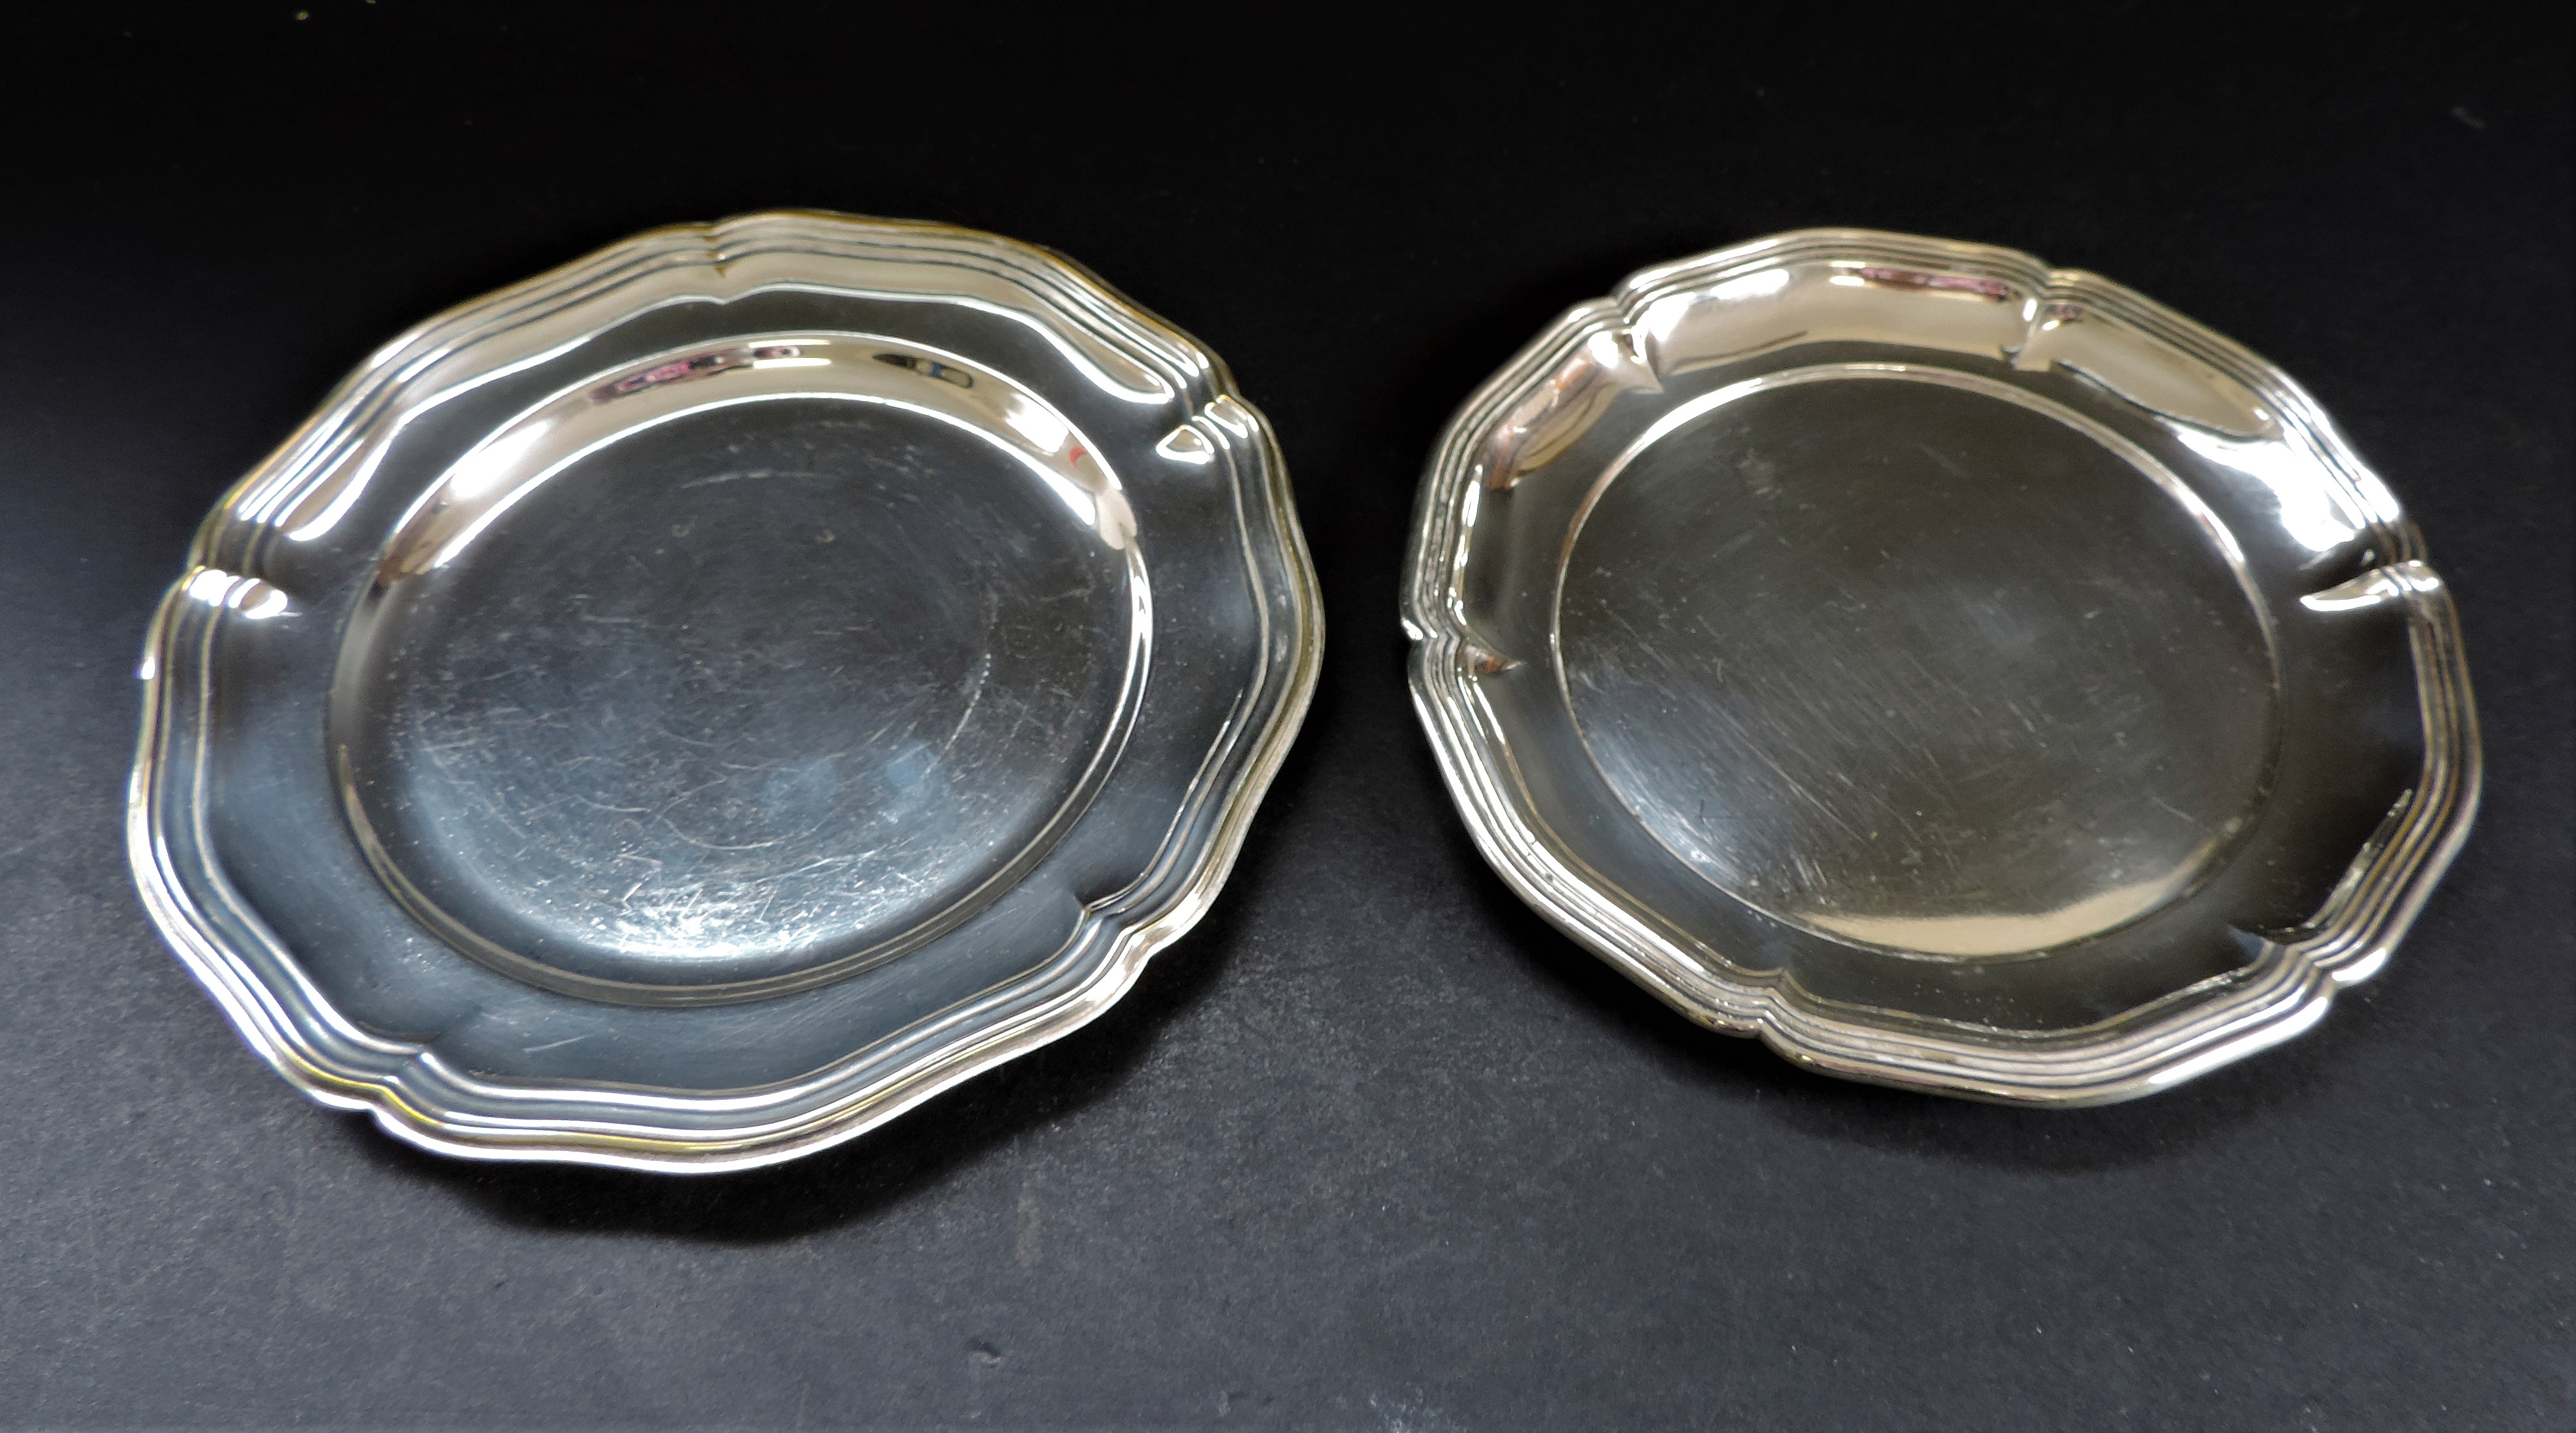 Pair of Antique Silver Plated Salvers - Image 2 of 3